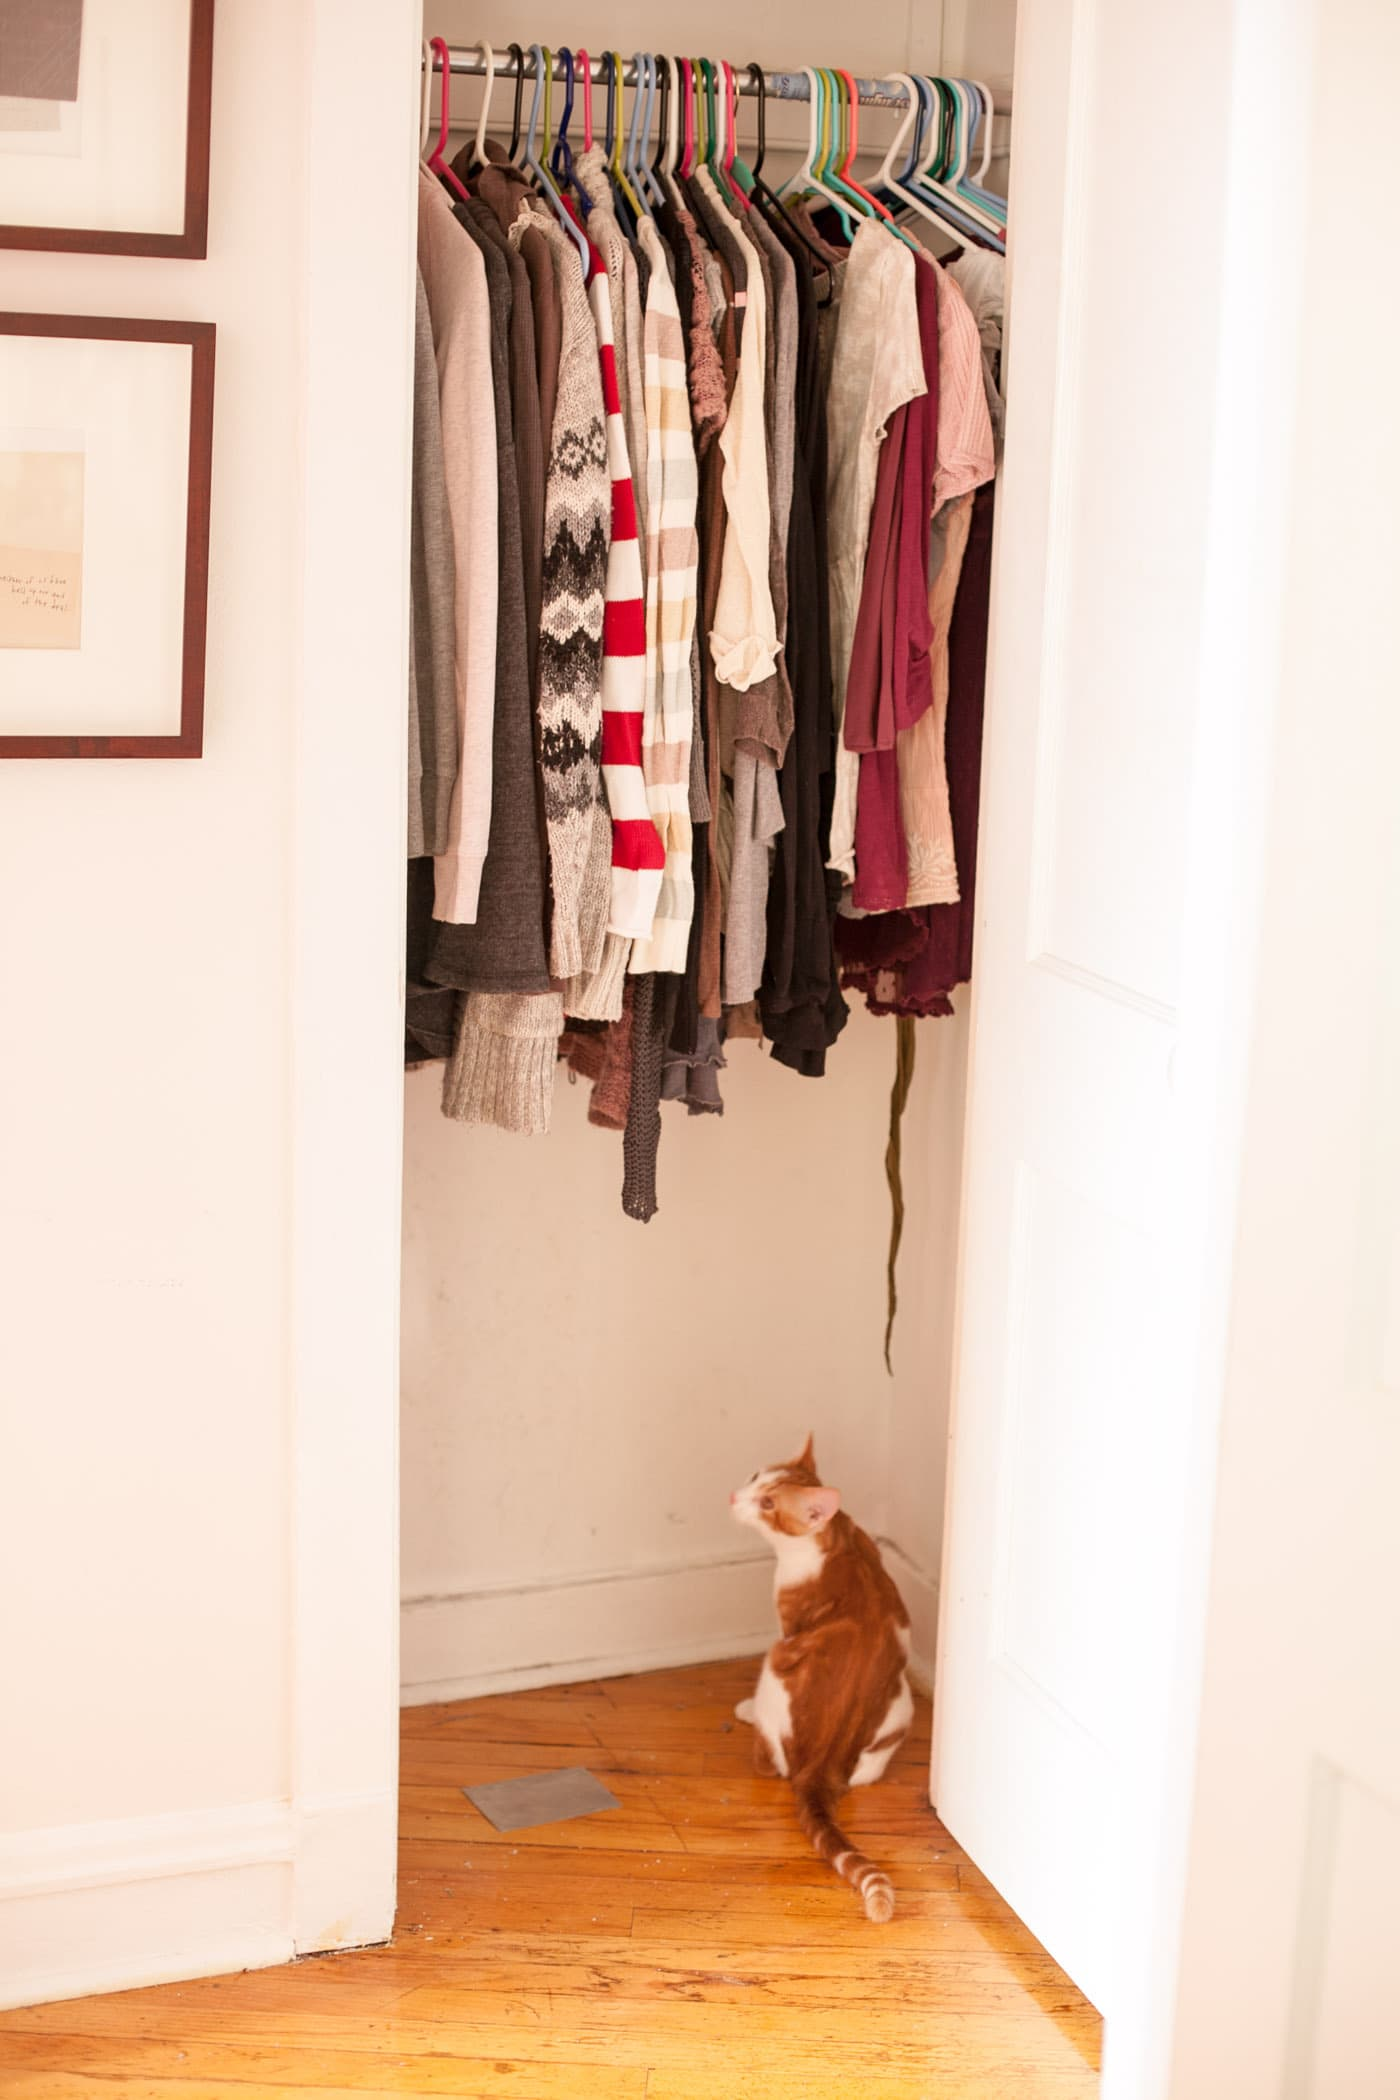 AFTER In the most dramatic transformation of all, the hall closet no longer has a shoe rack (all my shoes now fit on one in the bedroom closet), no longer has a hanging storage rack, has a smaller selection of hanging clothes with room to breathe, and contains only one cat.